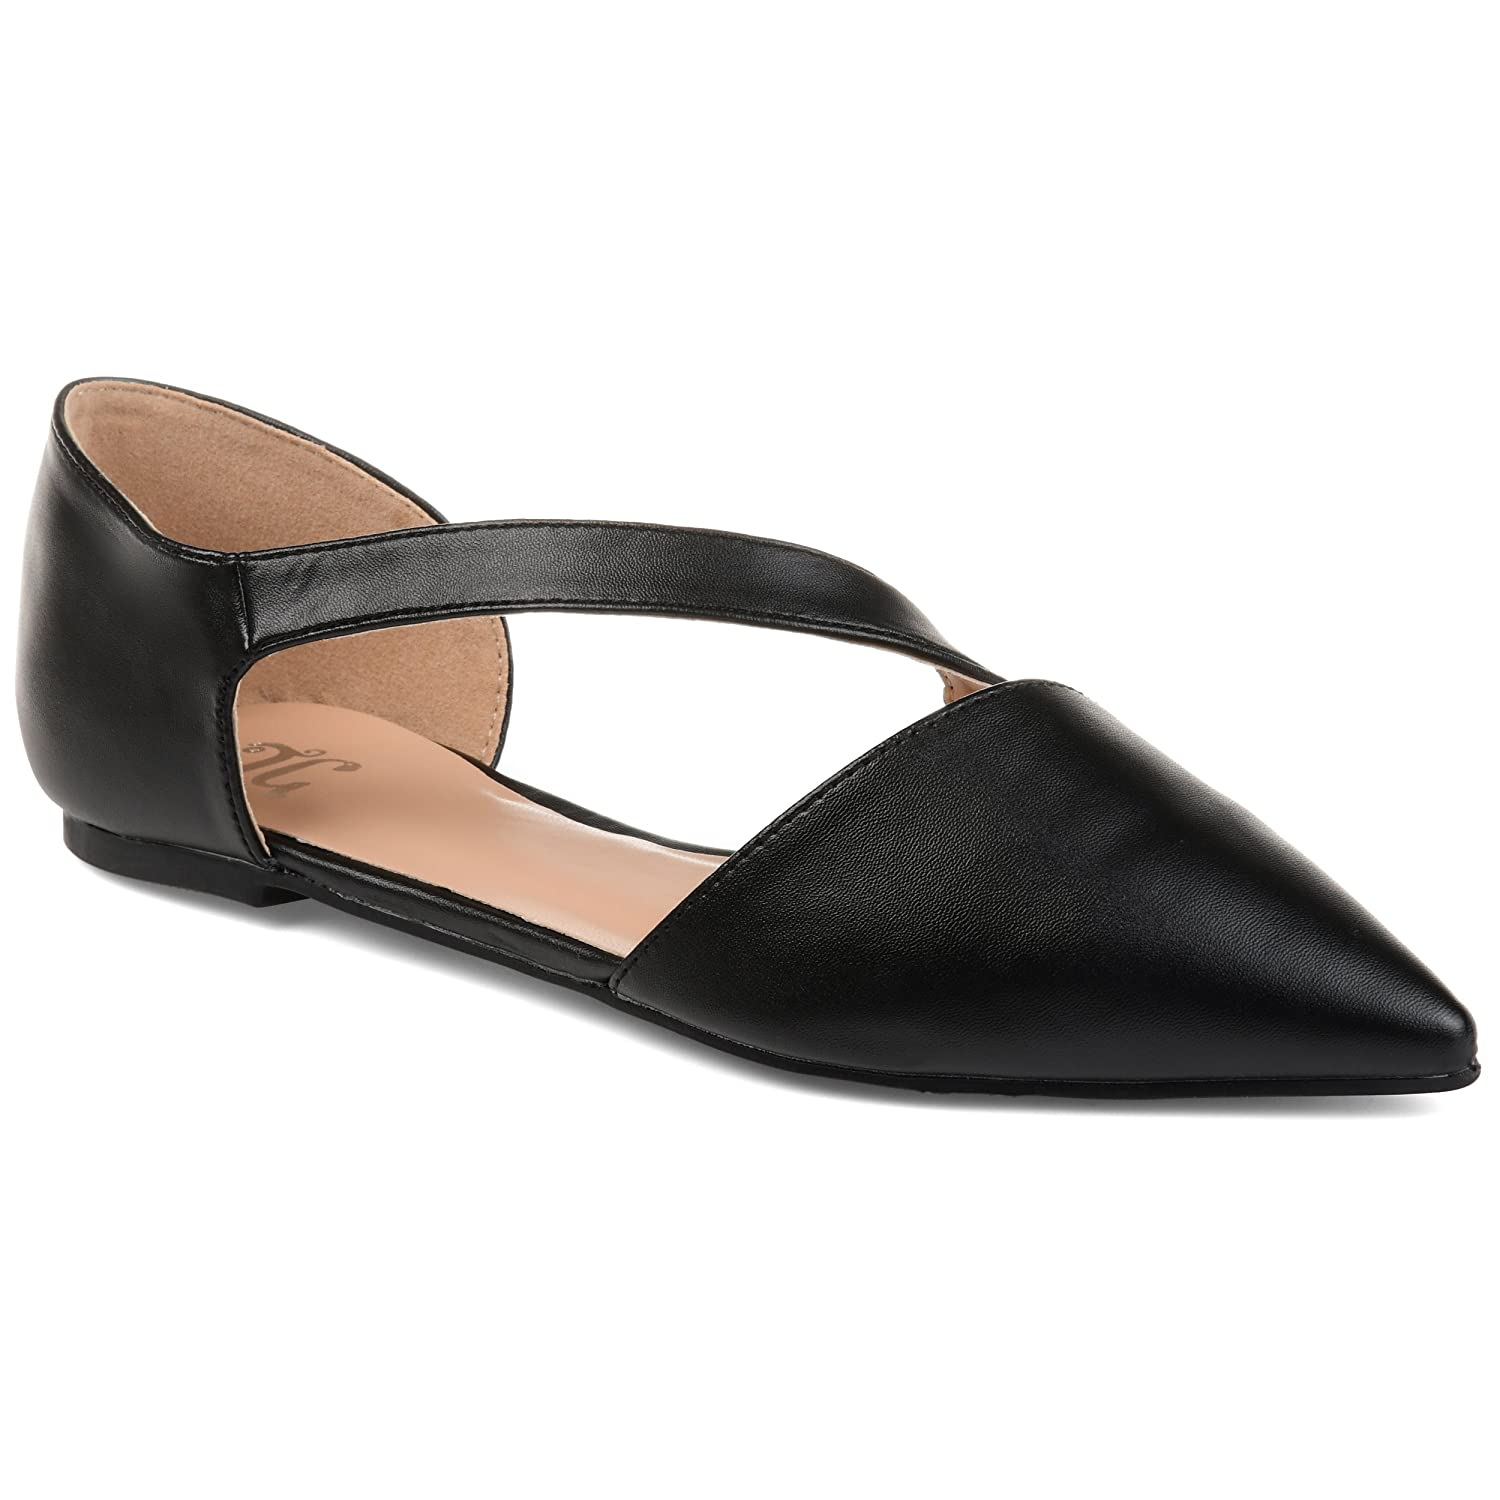 8e09dc69c21 Amazon.com | Journee Collection Womens Pointed Toe Cross Strap Flats | Flats